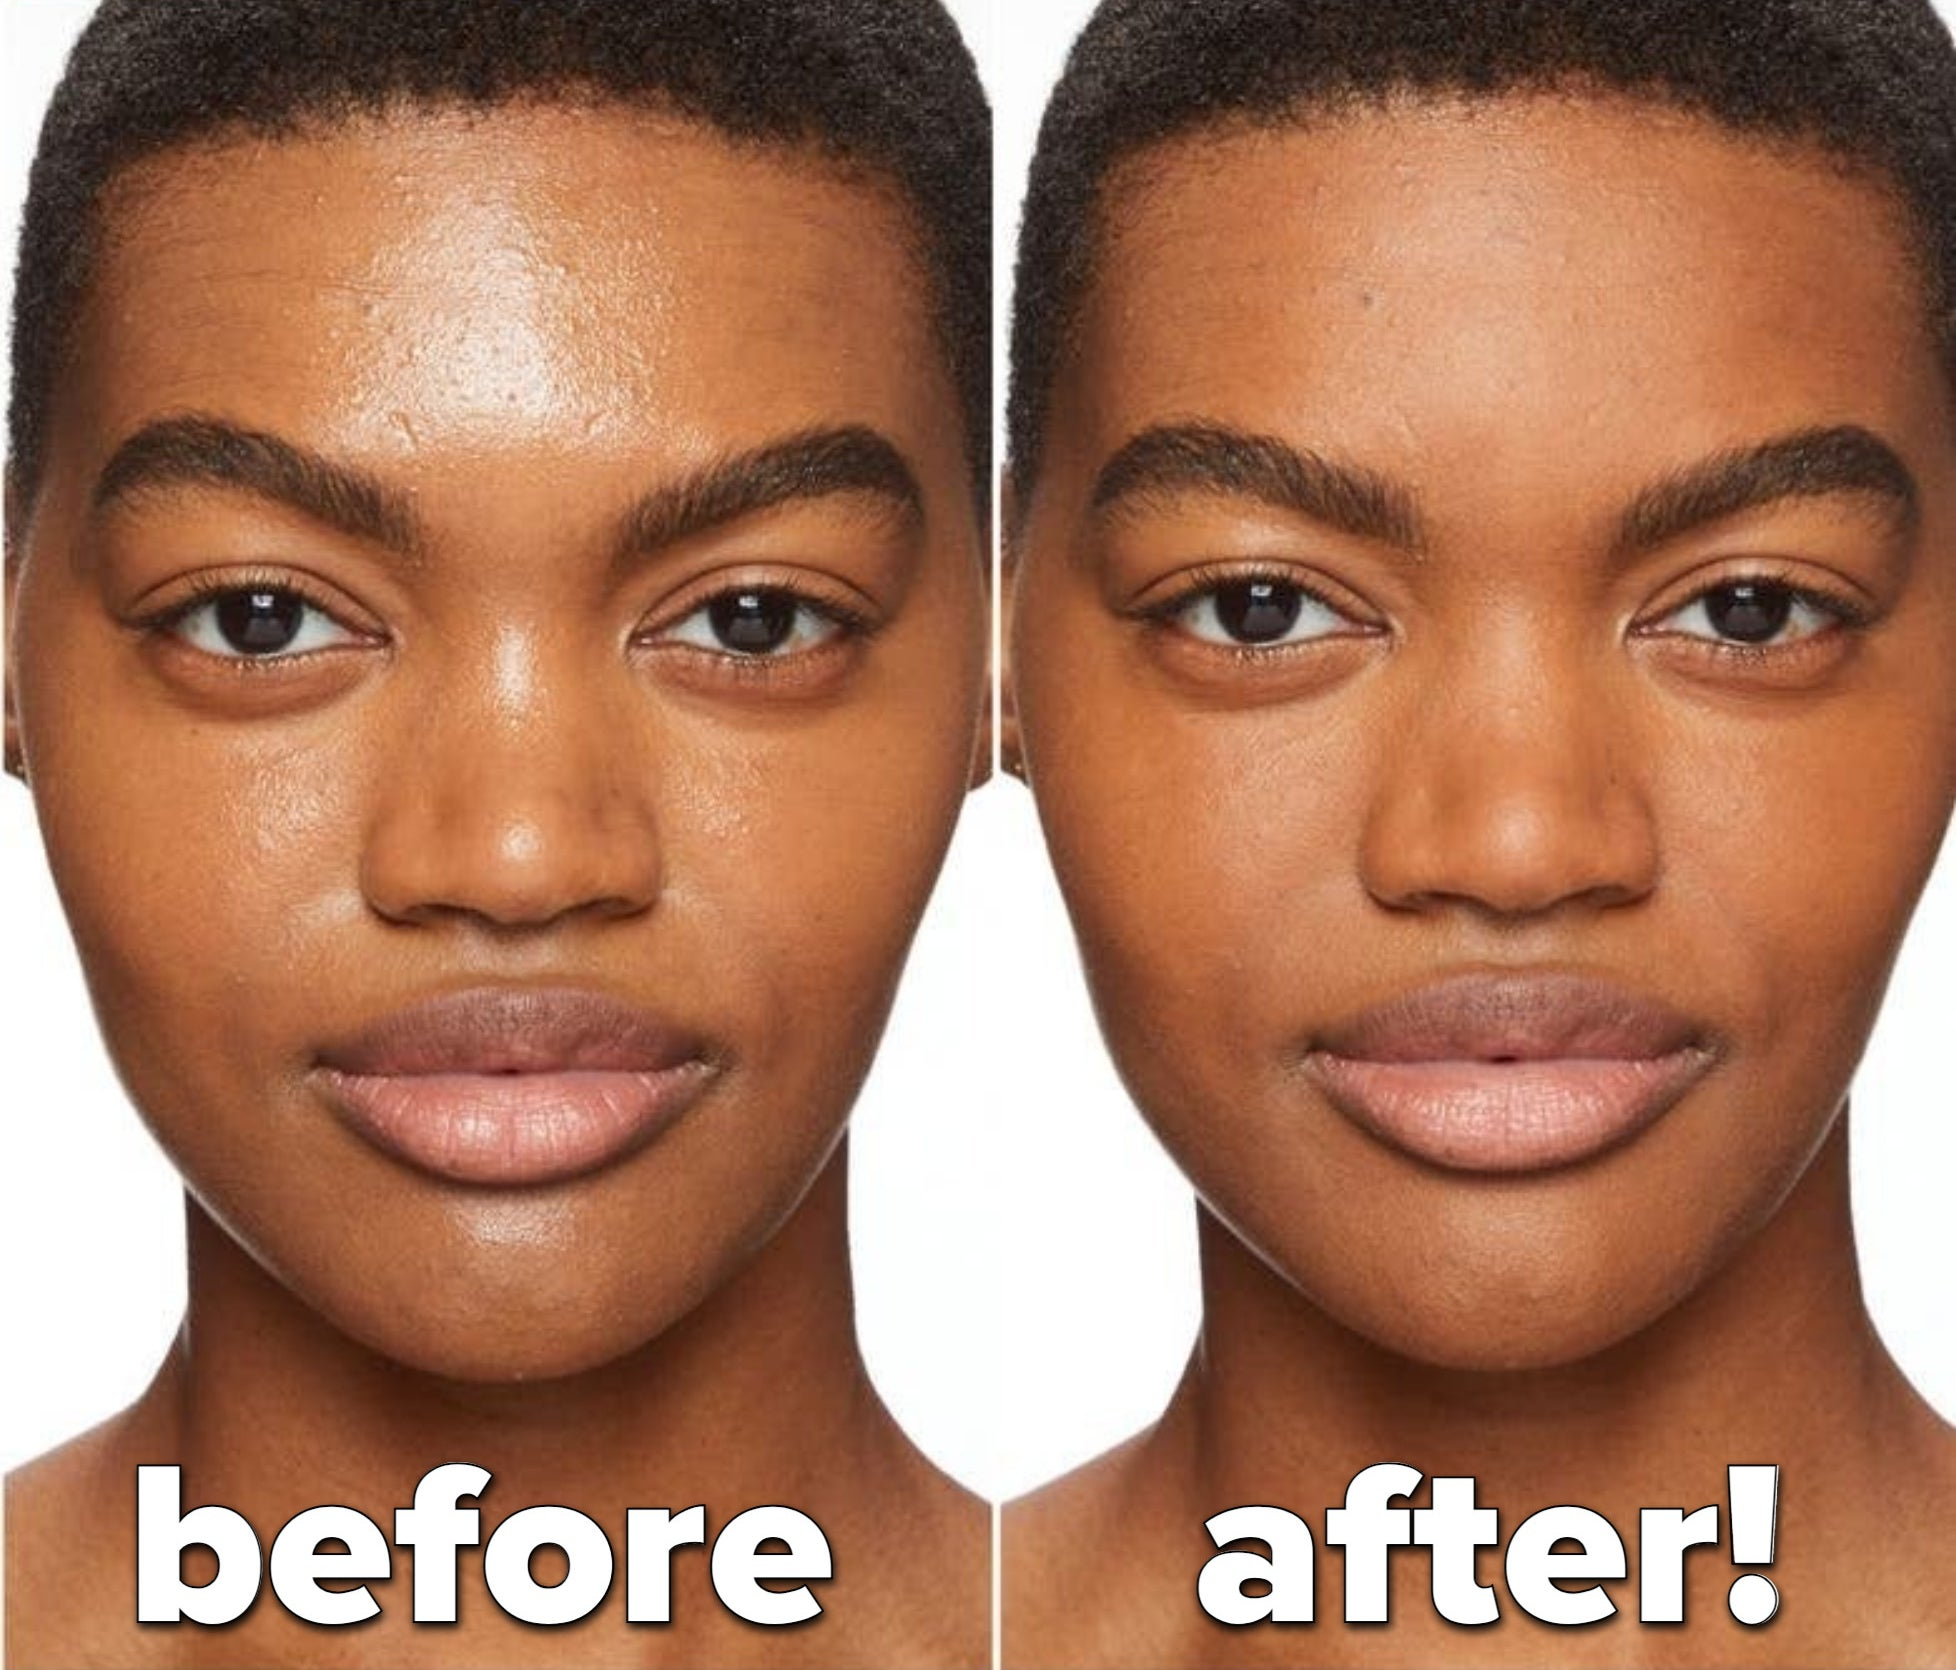 A model without the powder on / a model wears the powder in Medium  Deep